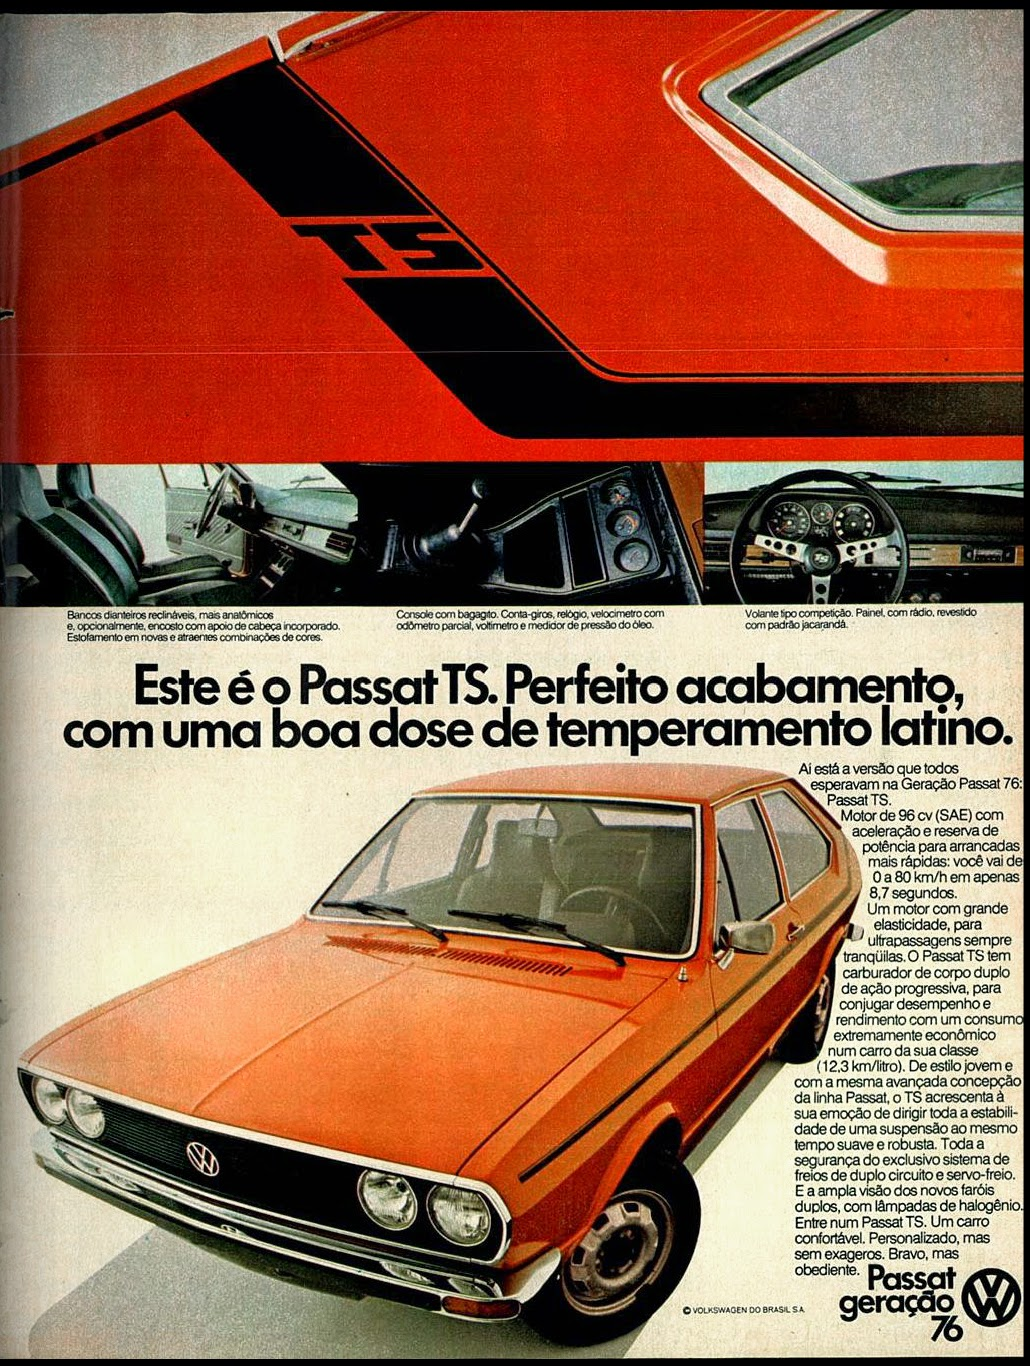 Volkswagen Passat.   brazilian advertising cars in the 70. os anos 70. história da década de 70; Brazil in the 70s; propaganda carros anos 70; Oswaldo Hernandez;